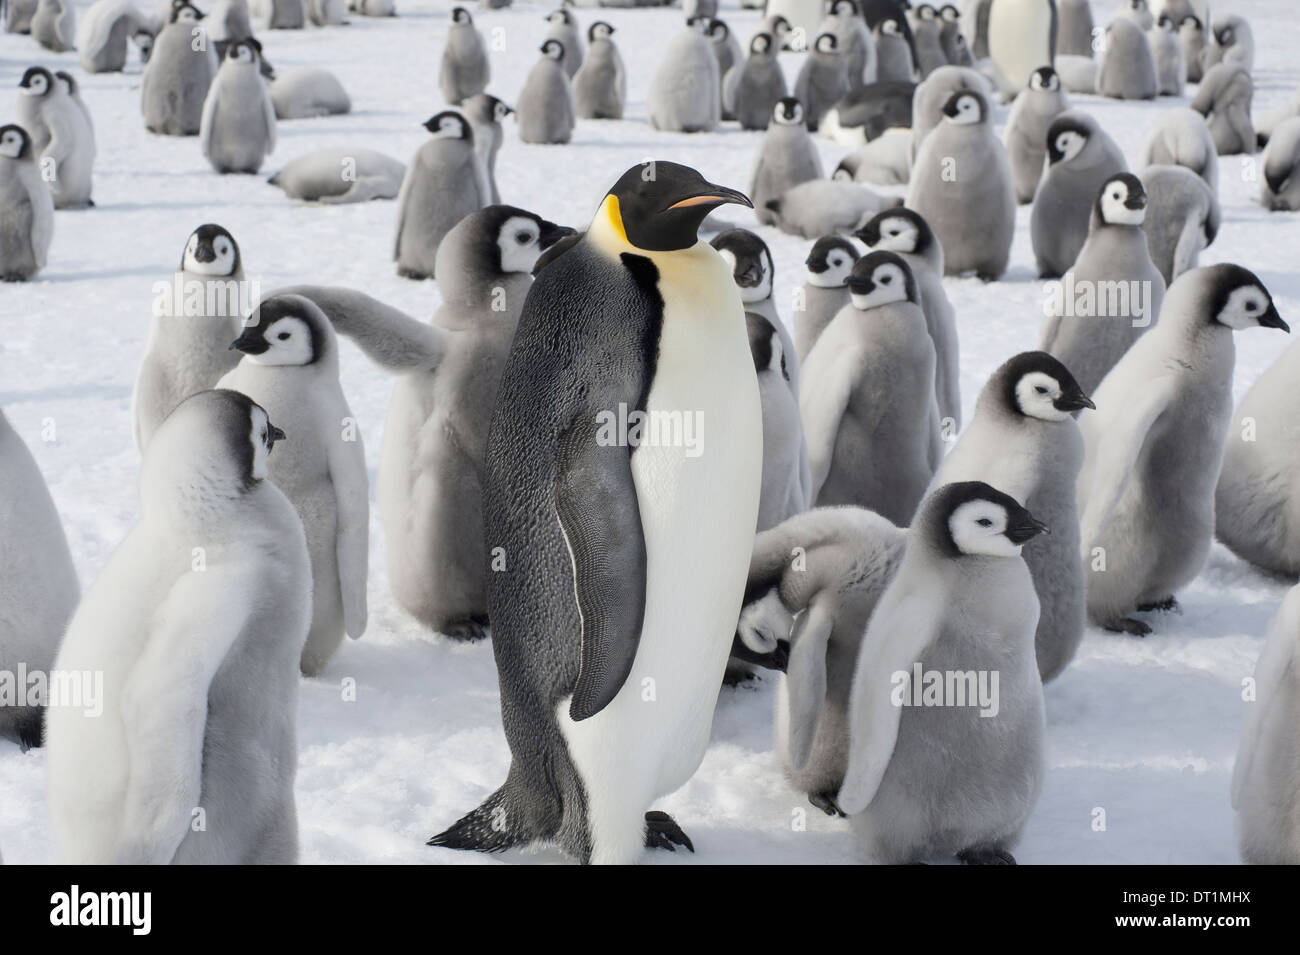 A group of Emperor penguins one adult animal and a large group of penguin chicks A breeding colony Stock Photo